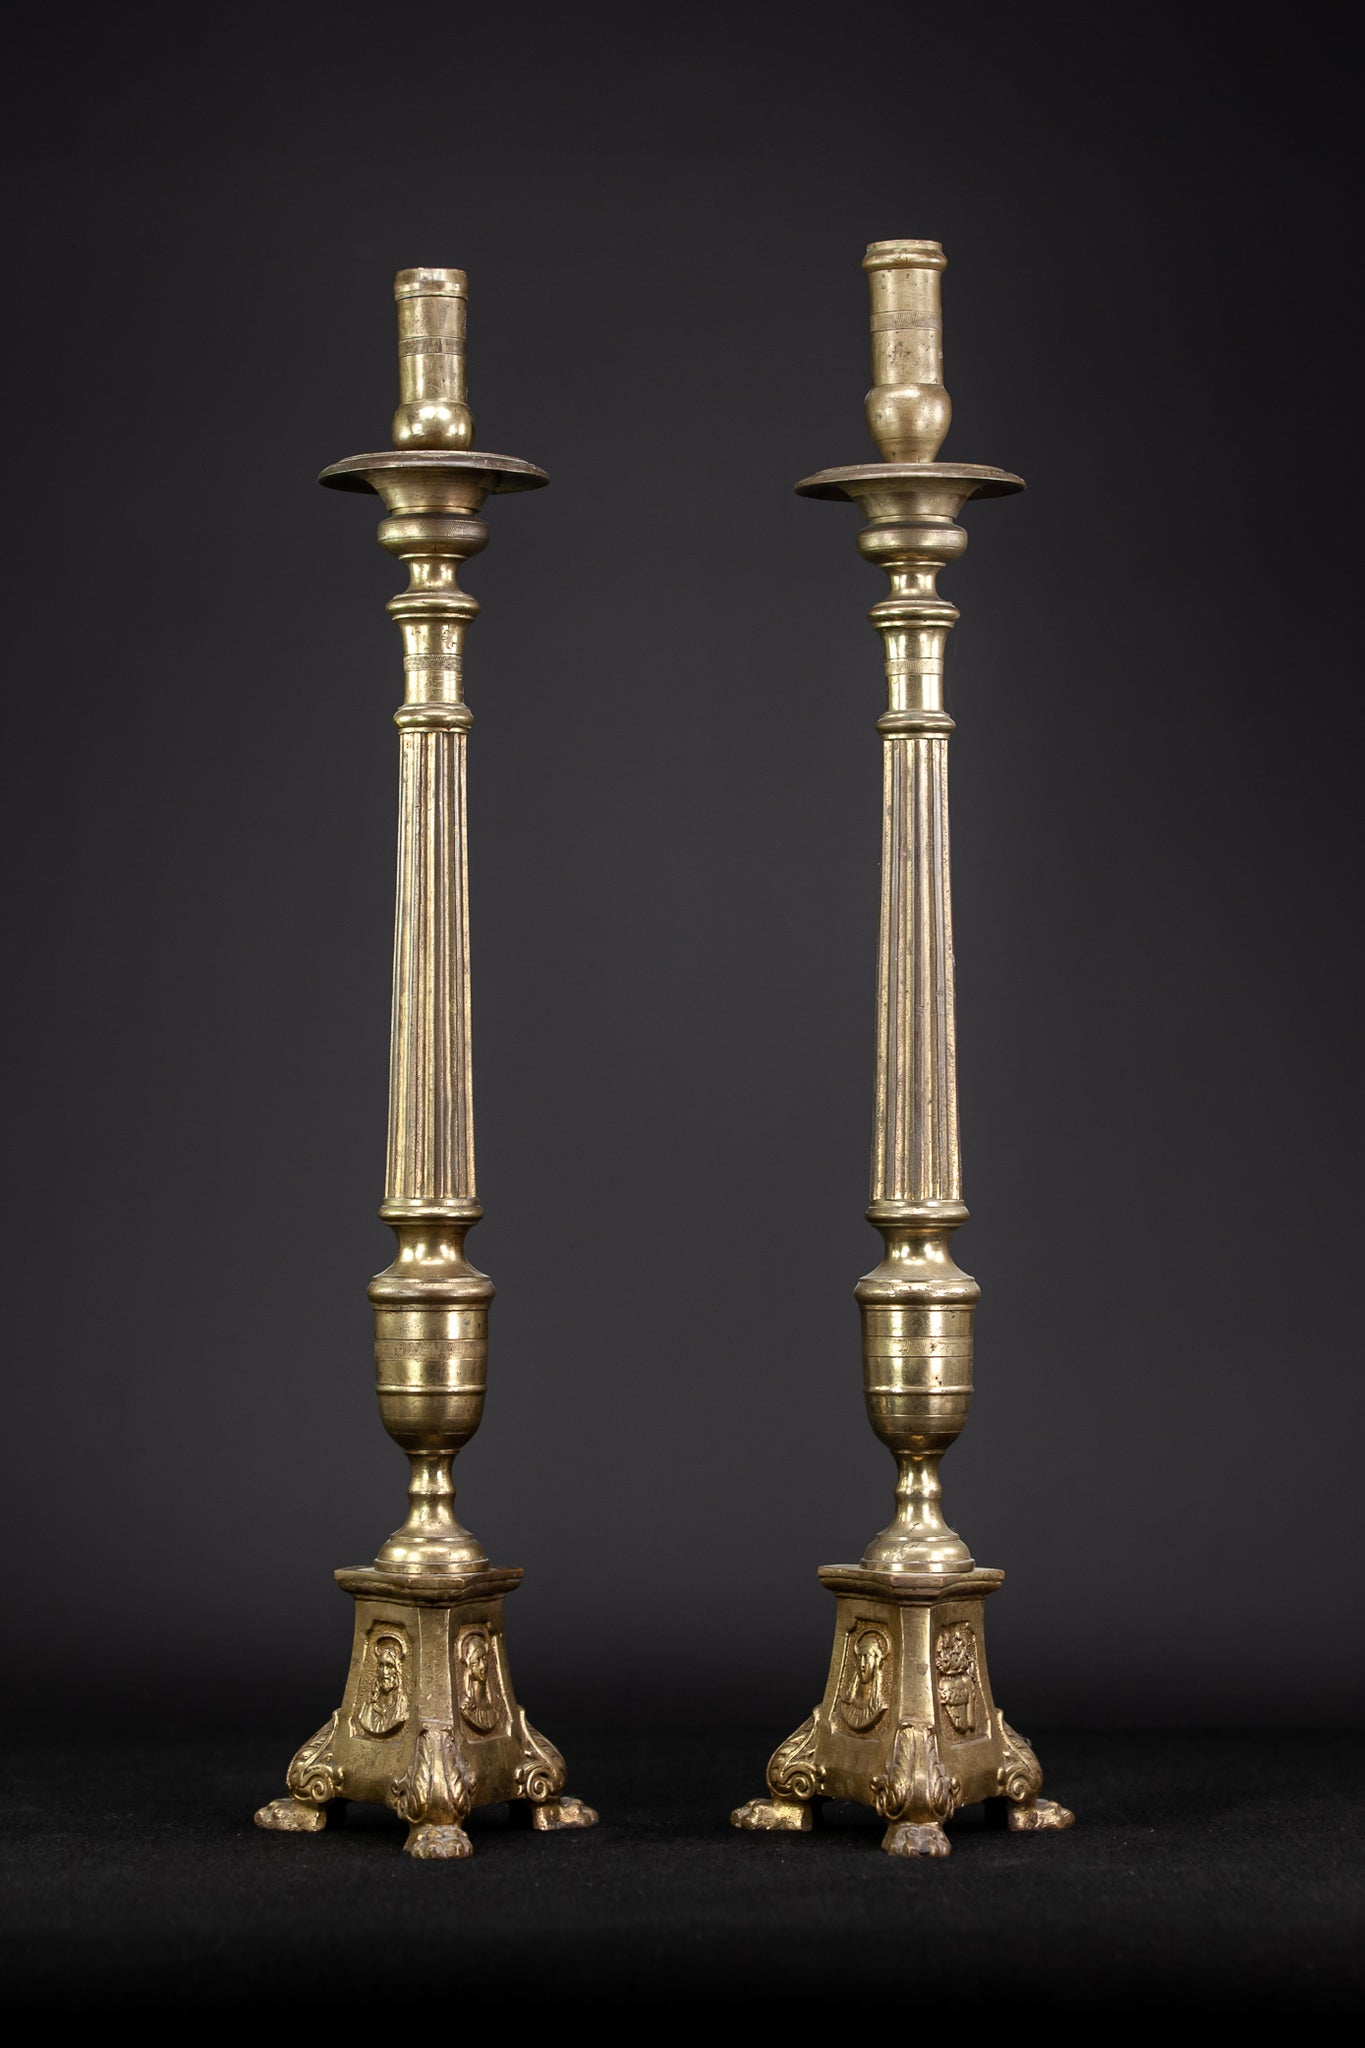 Candlesticks Pair French Brass Candle Holders 1800s 25""